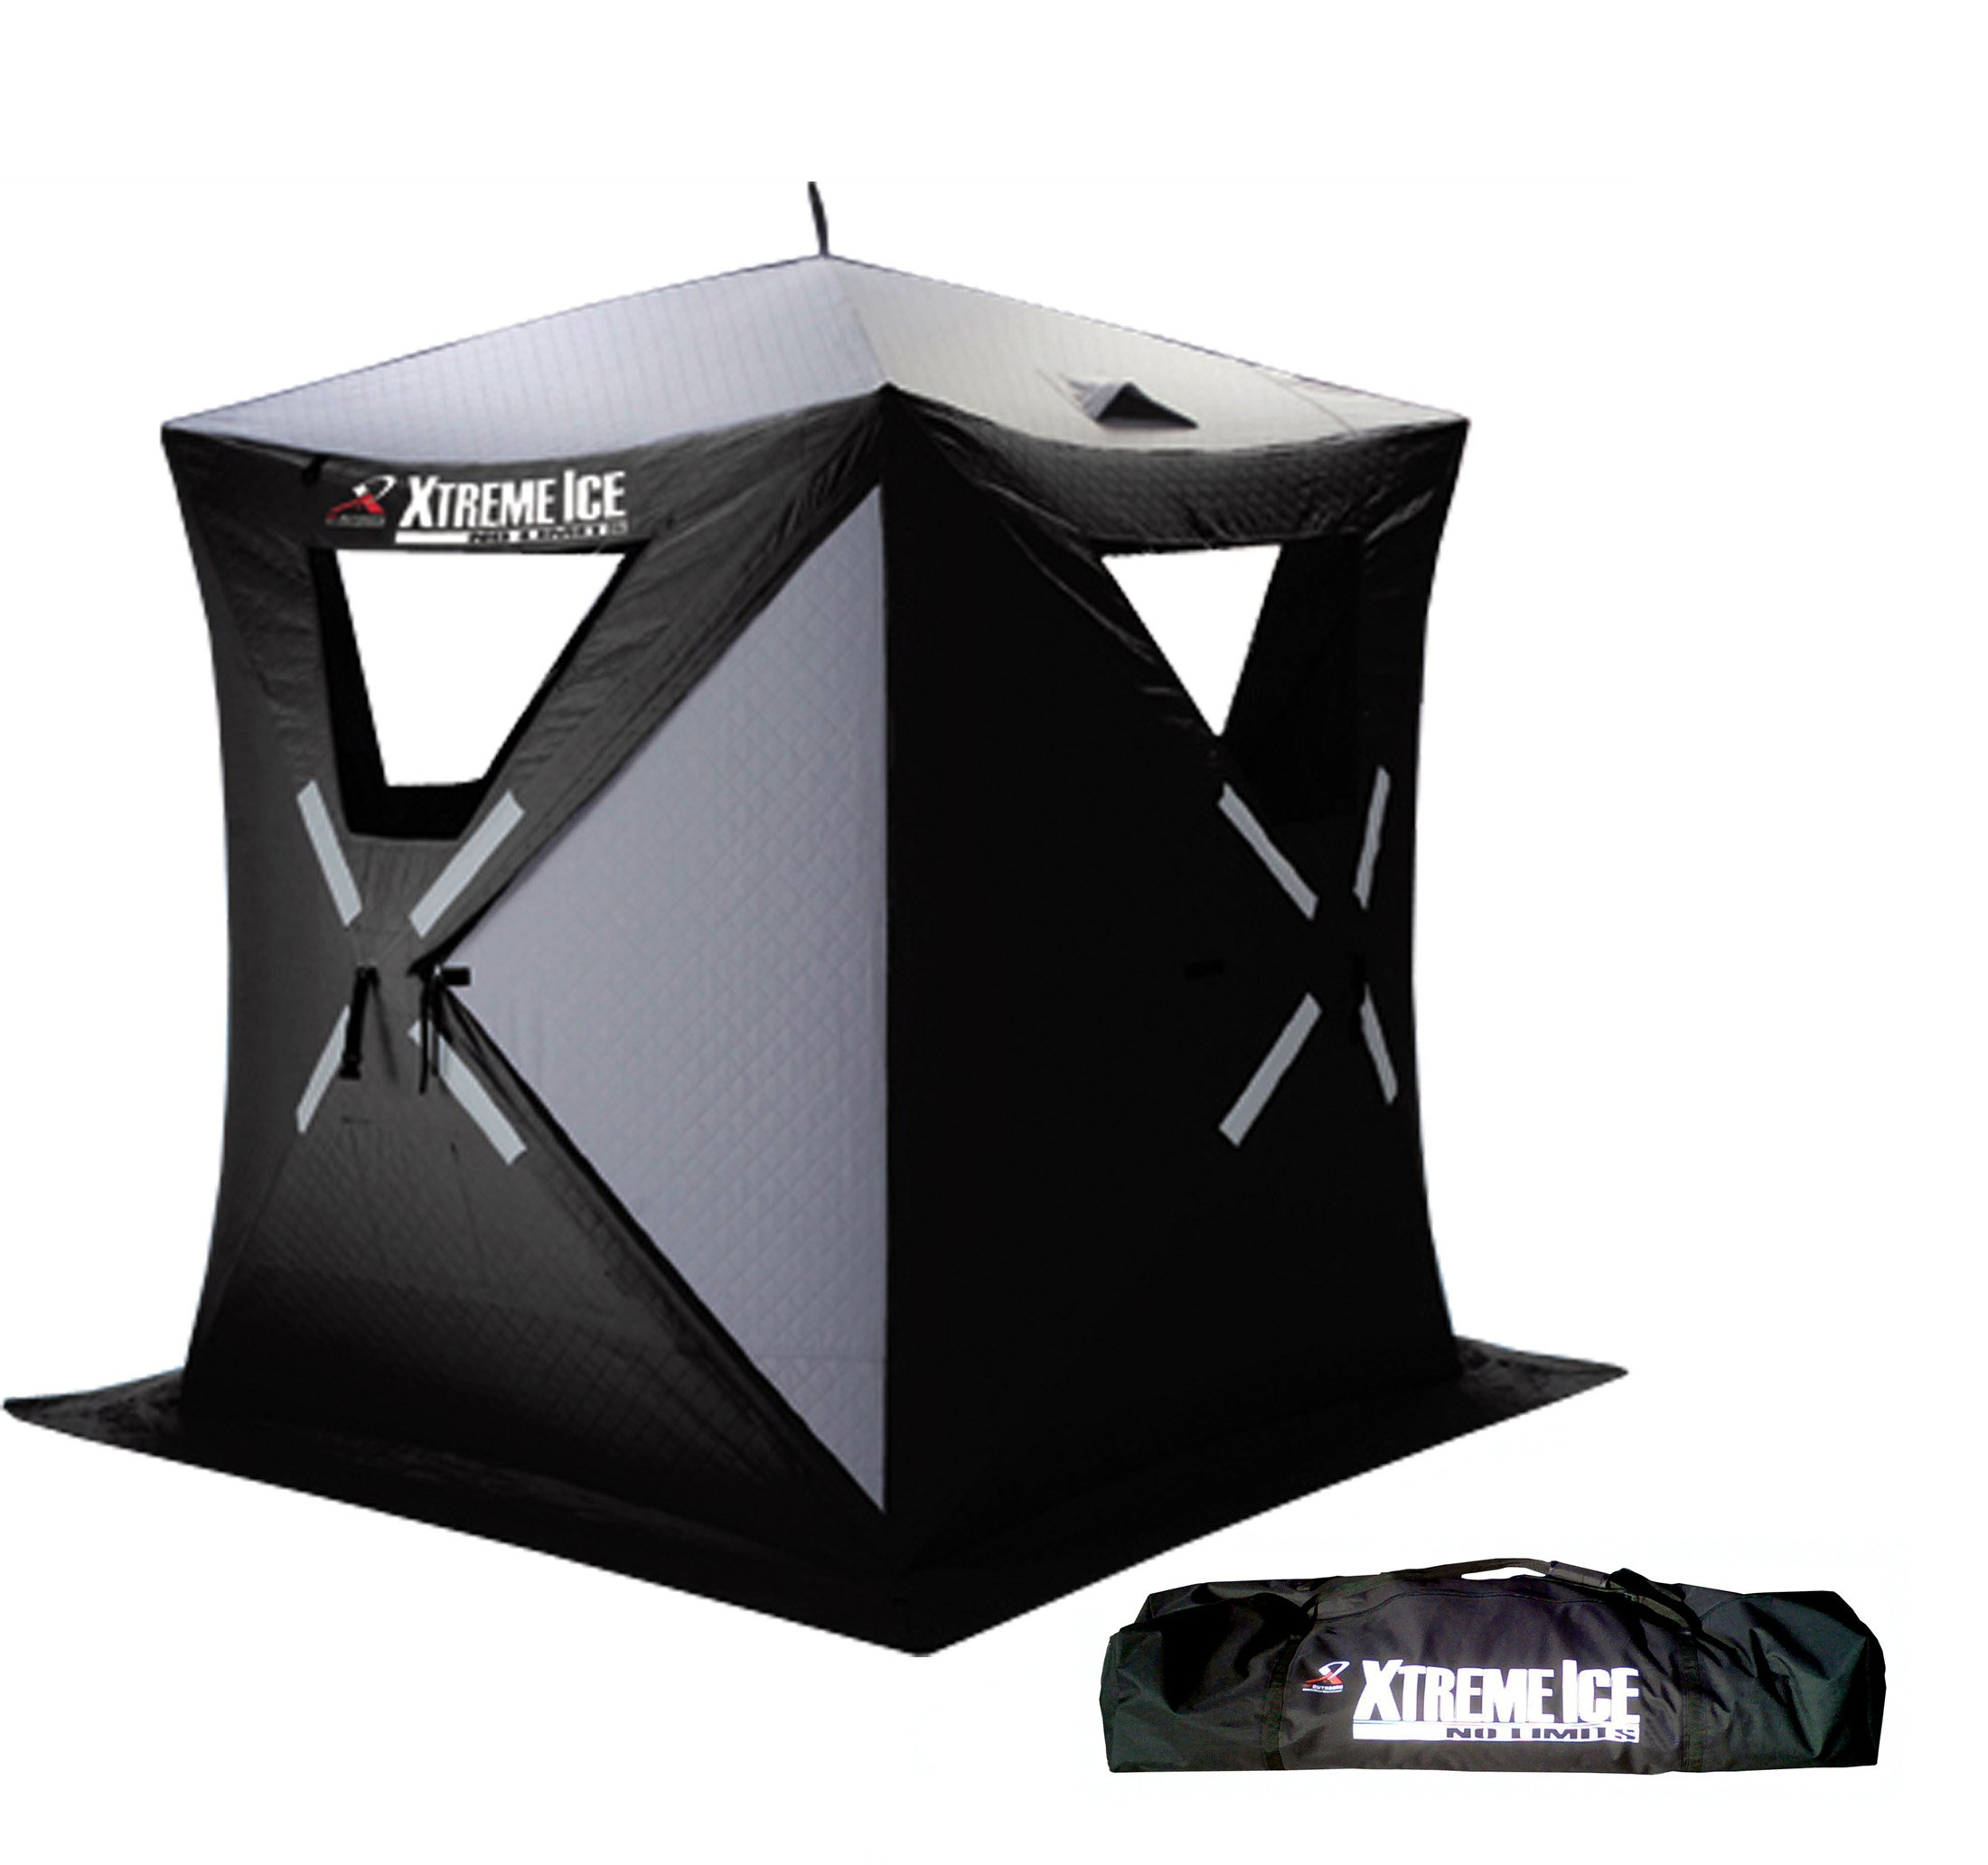 Ap Outdoors Xtreme Ice Xi3 Thermal 3-4 Person Thermal Hub Style Pop-Up Ice Fishing Shelter (6 X 6-Feet )